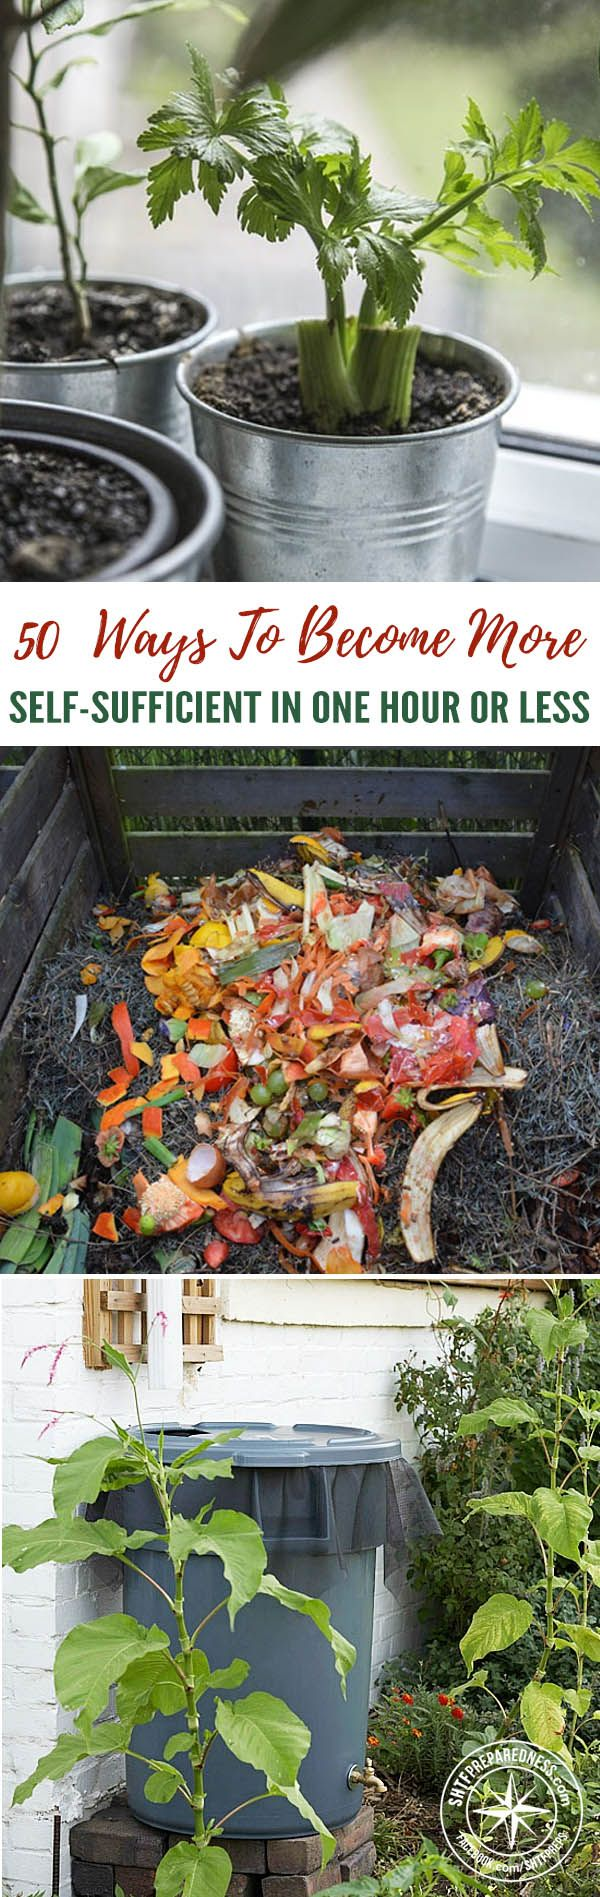 50 Ways to Become More Self-Sufficient in One Hour or Less — If you woke up one morning and you had no one to rely on but yourself, could you do it? Could you be entirely self-sufficient, with food, shelter, and other necessities? It is easy to take things for granted when they are so easily come by-a drive to the supermarket can solve so many problems.